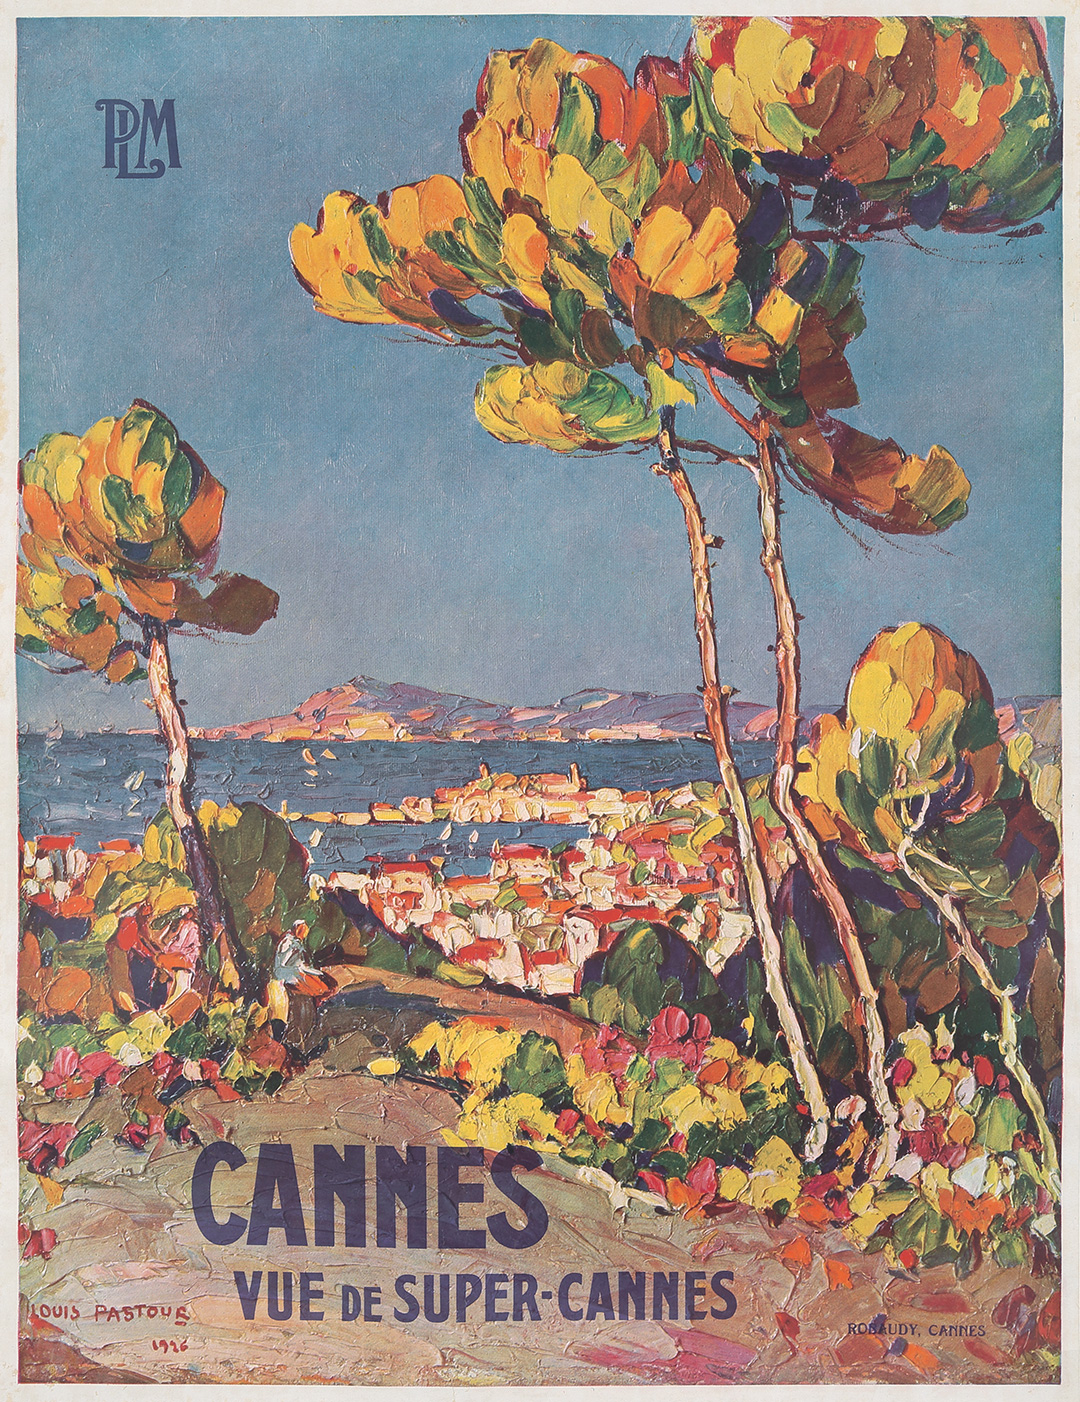 Cannes. 1926.